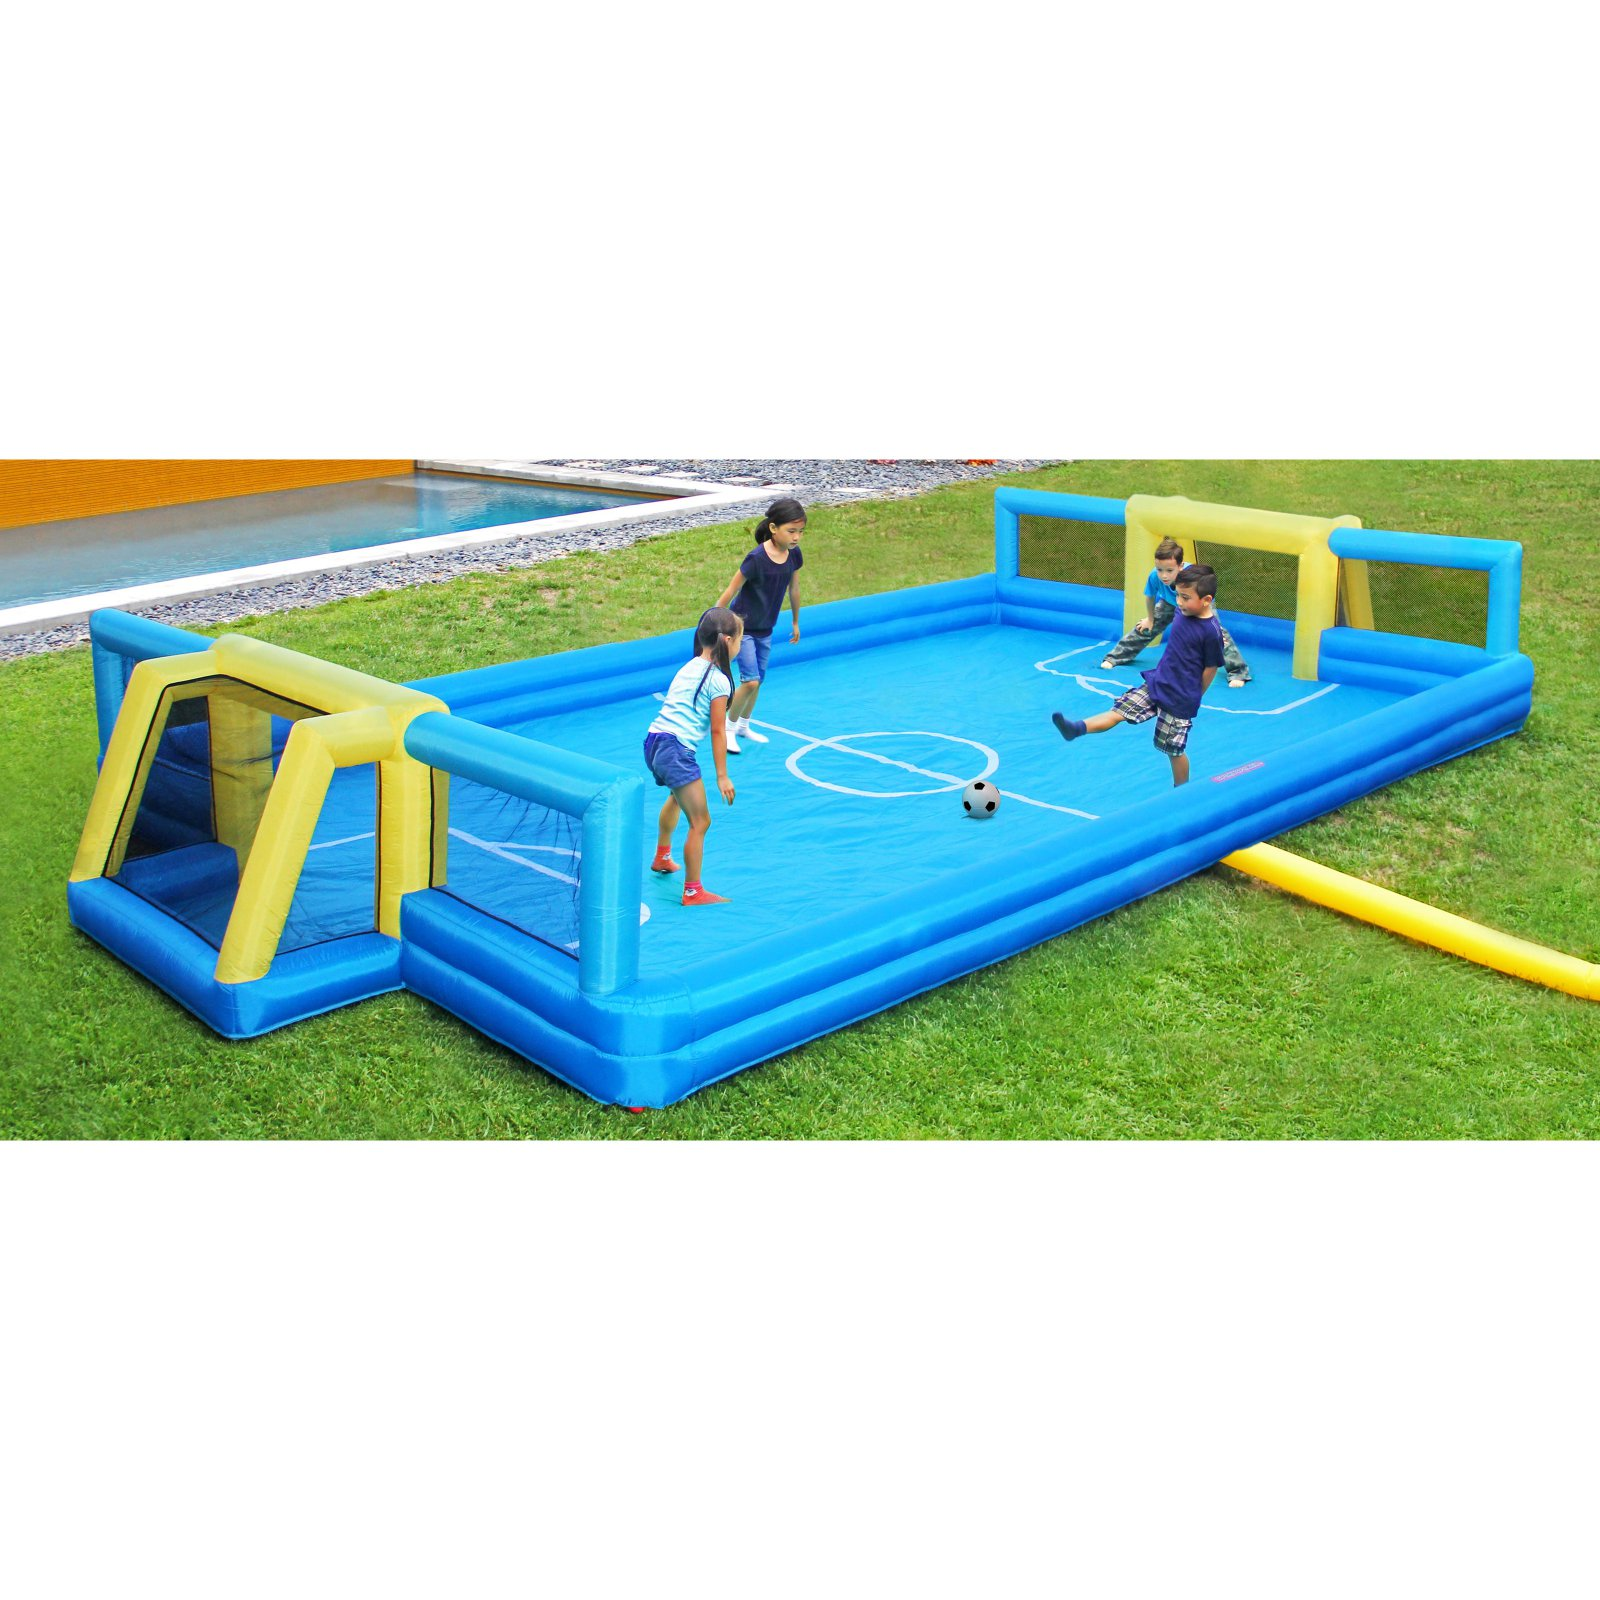 Sportspower Inflatable Soccer Field with 2 Soccer Goals by Natus Inc